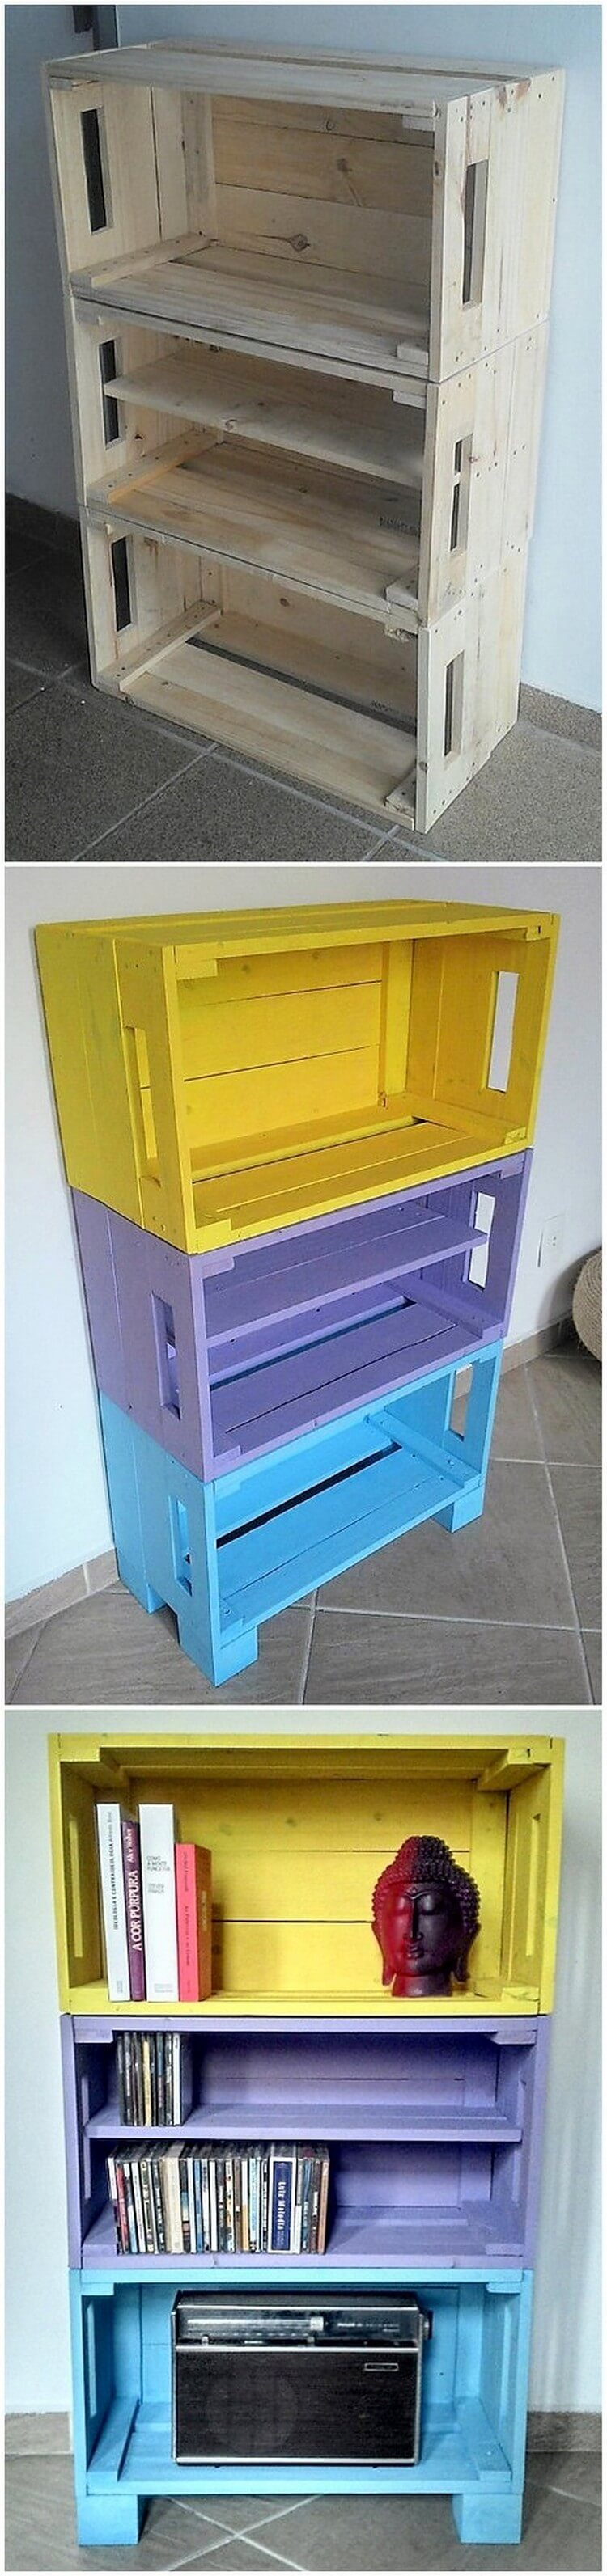 Pallets and Fruit Crates Bookshelving